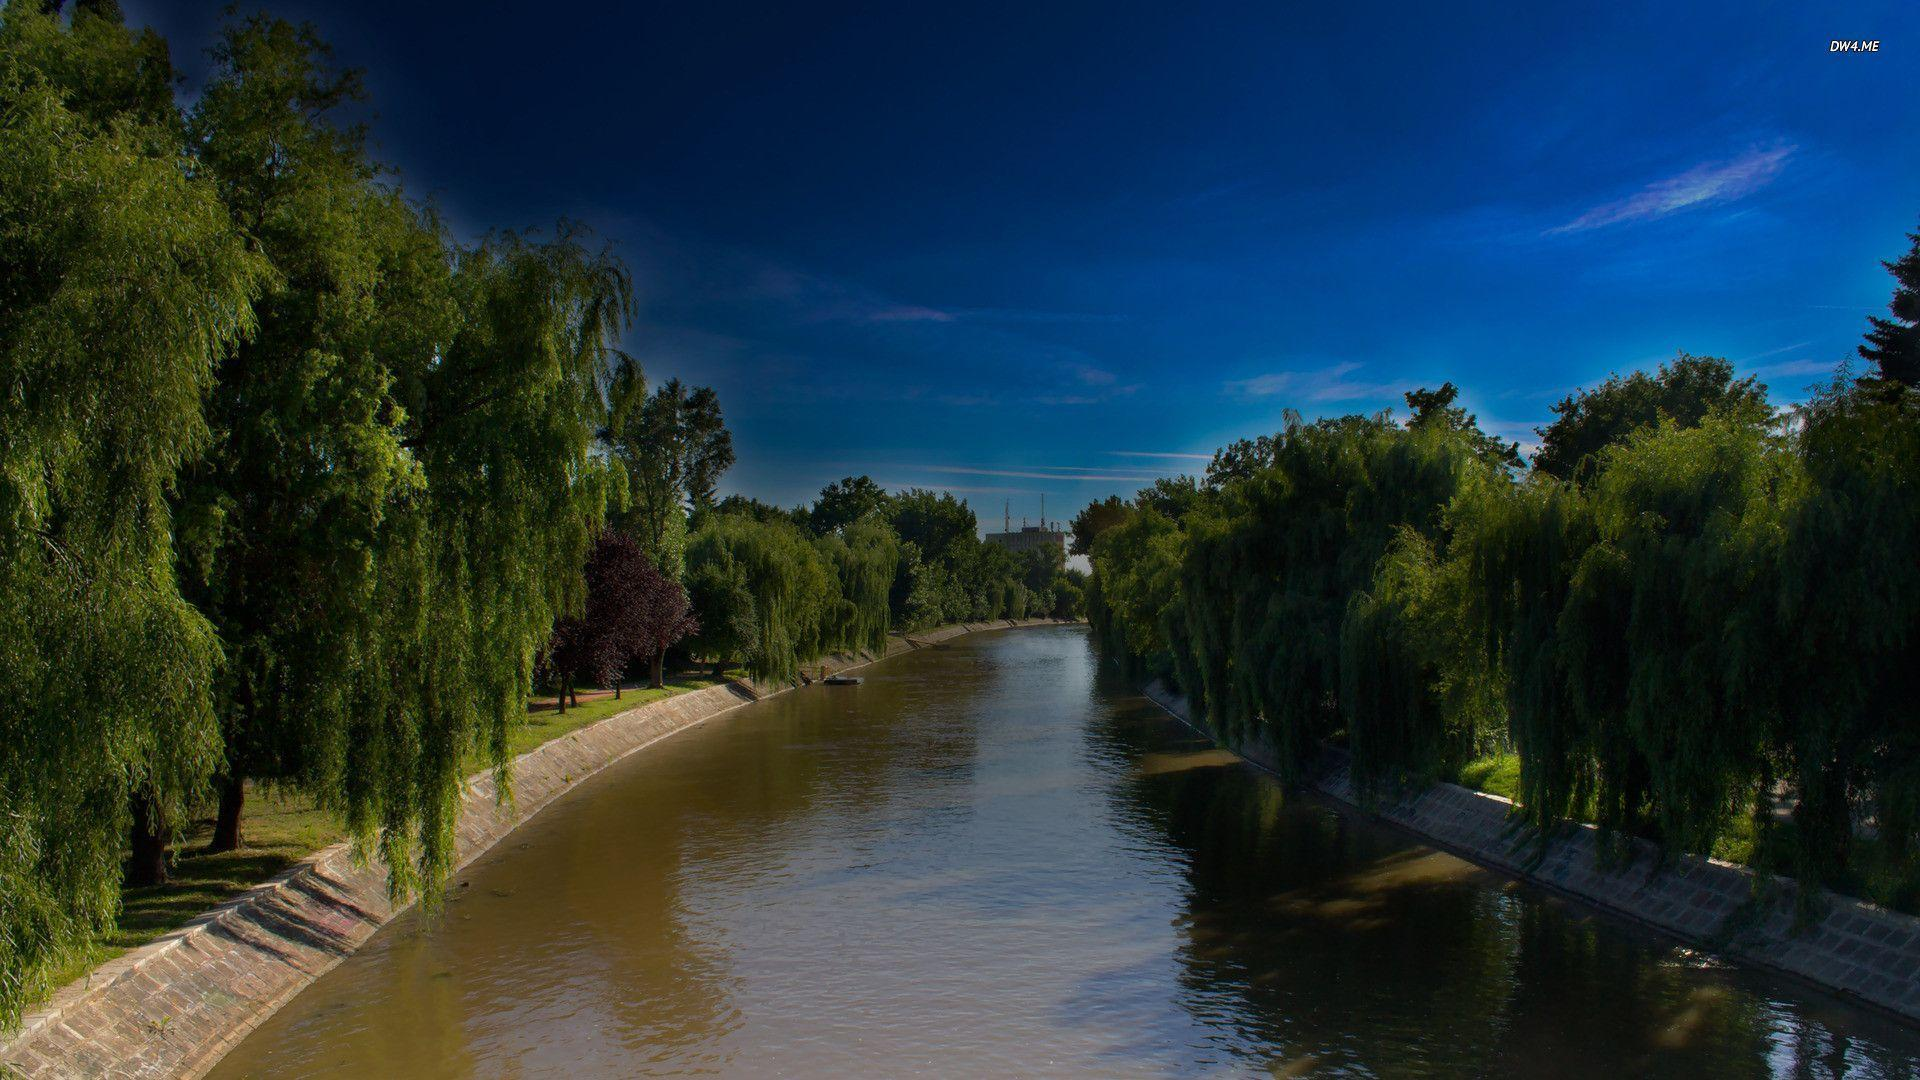 HD The Bega River In Serbia Wallpapers